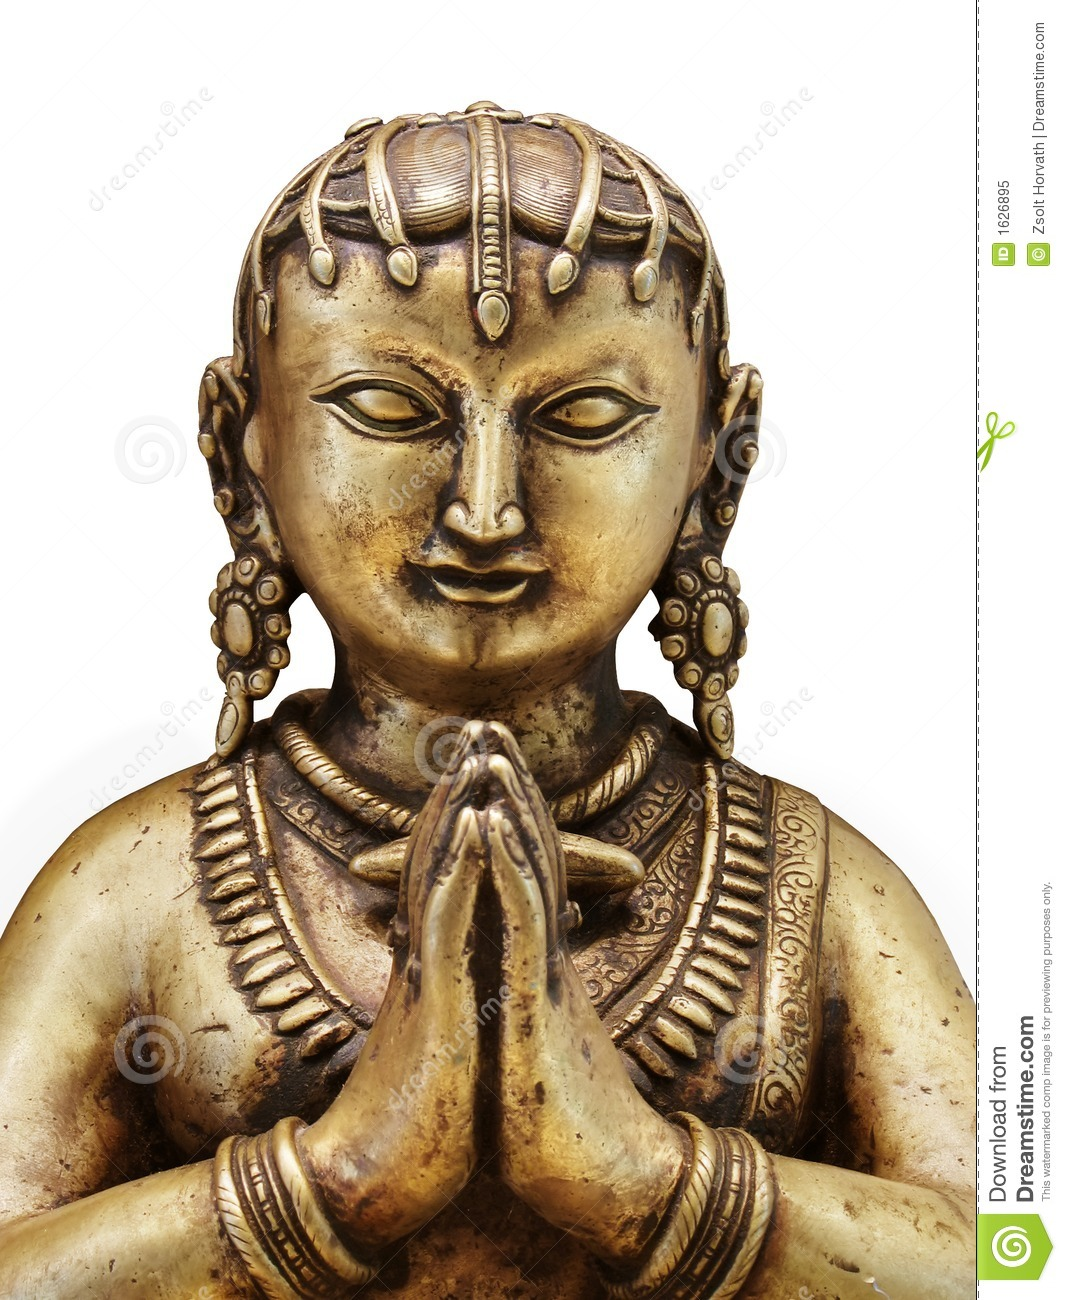 monument hindu single women Once one begins to search for an adequate definition of culture, one quickly   ndebele, khoisan, hindu, muslim, and afrikaner people to name but a few  the  practice of female genital mutilation or the display of monuments.